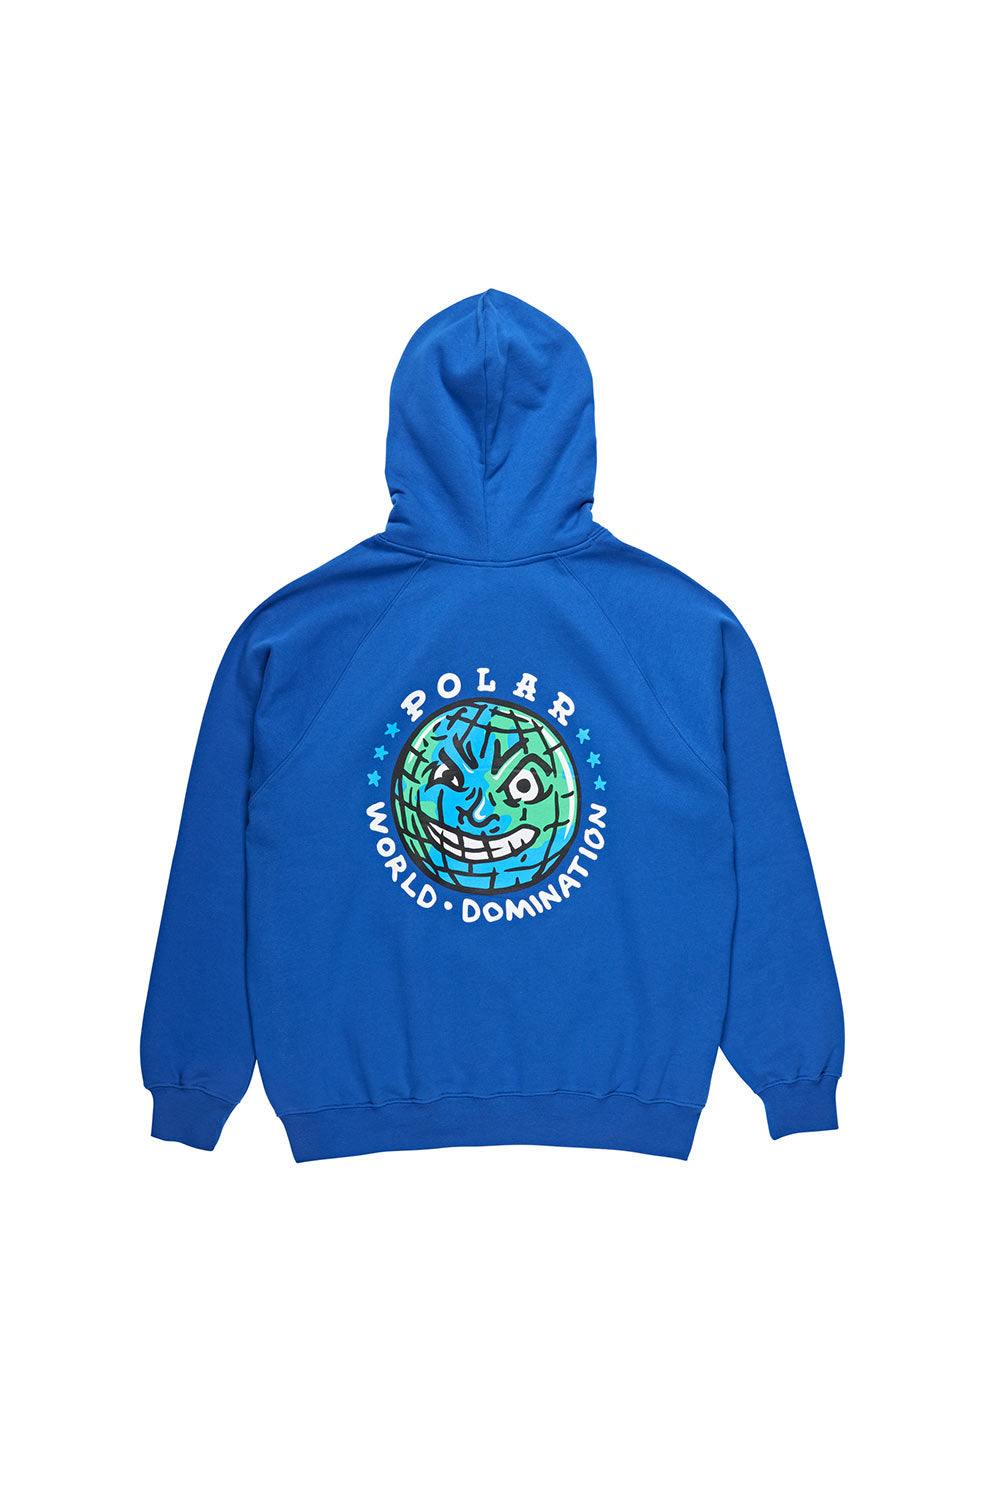 Polar Skate Co P.W.D Hoodie - Blue | Buy Polar Skate Co Online